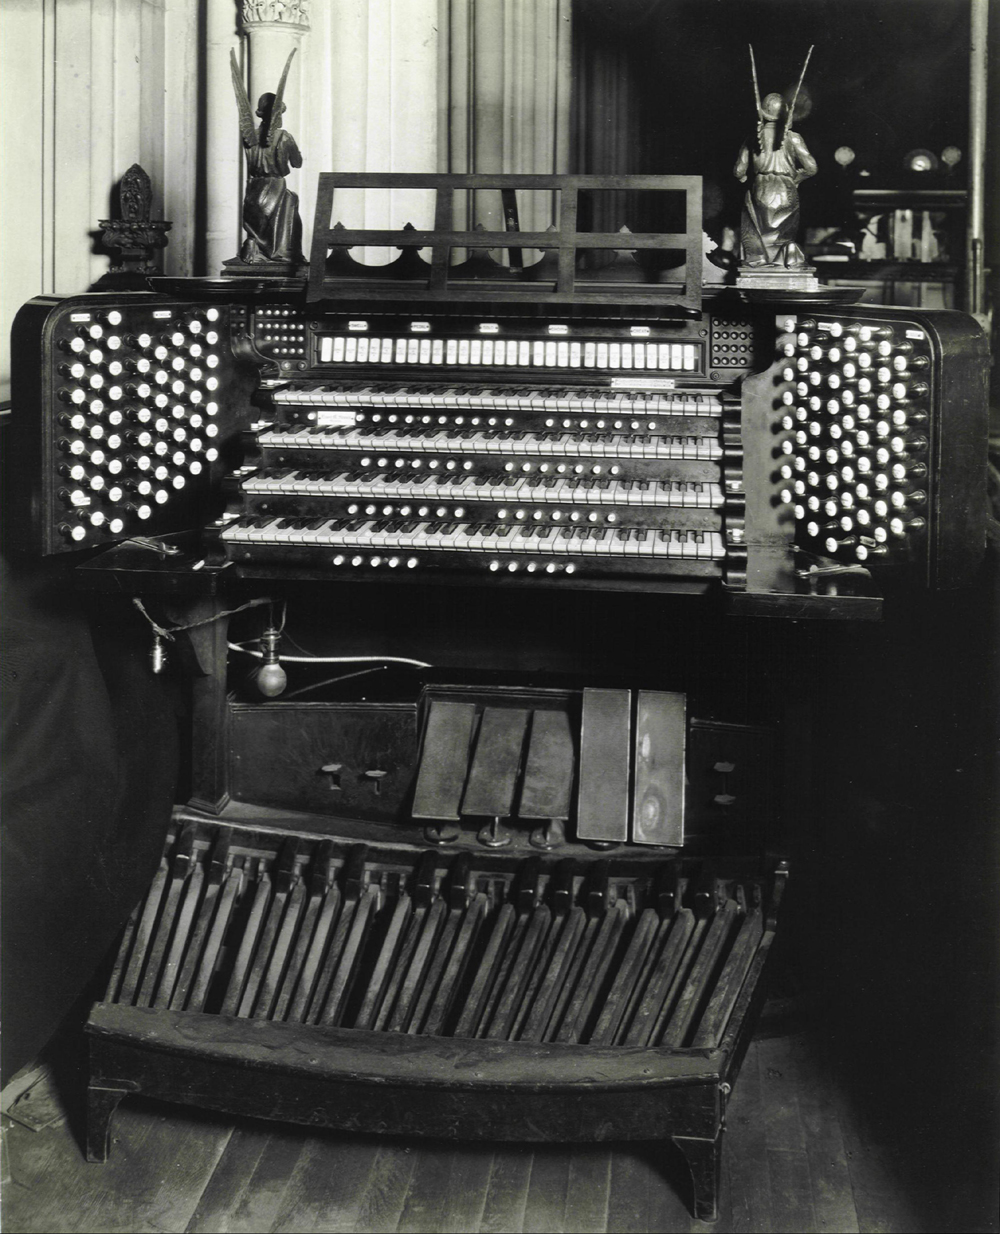 Chancel Console of Ernest M. Skinner Organ, Op. 201 (1912) in Grace Church - New York City (Grace Church Archives)